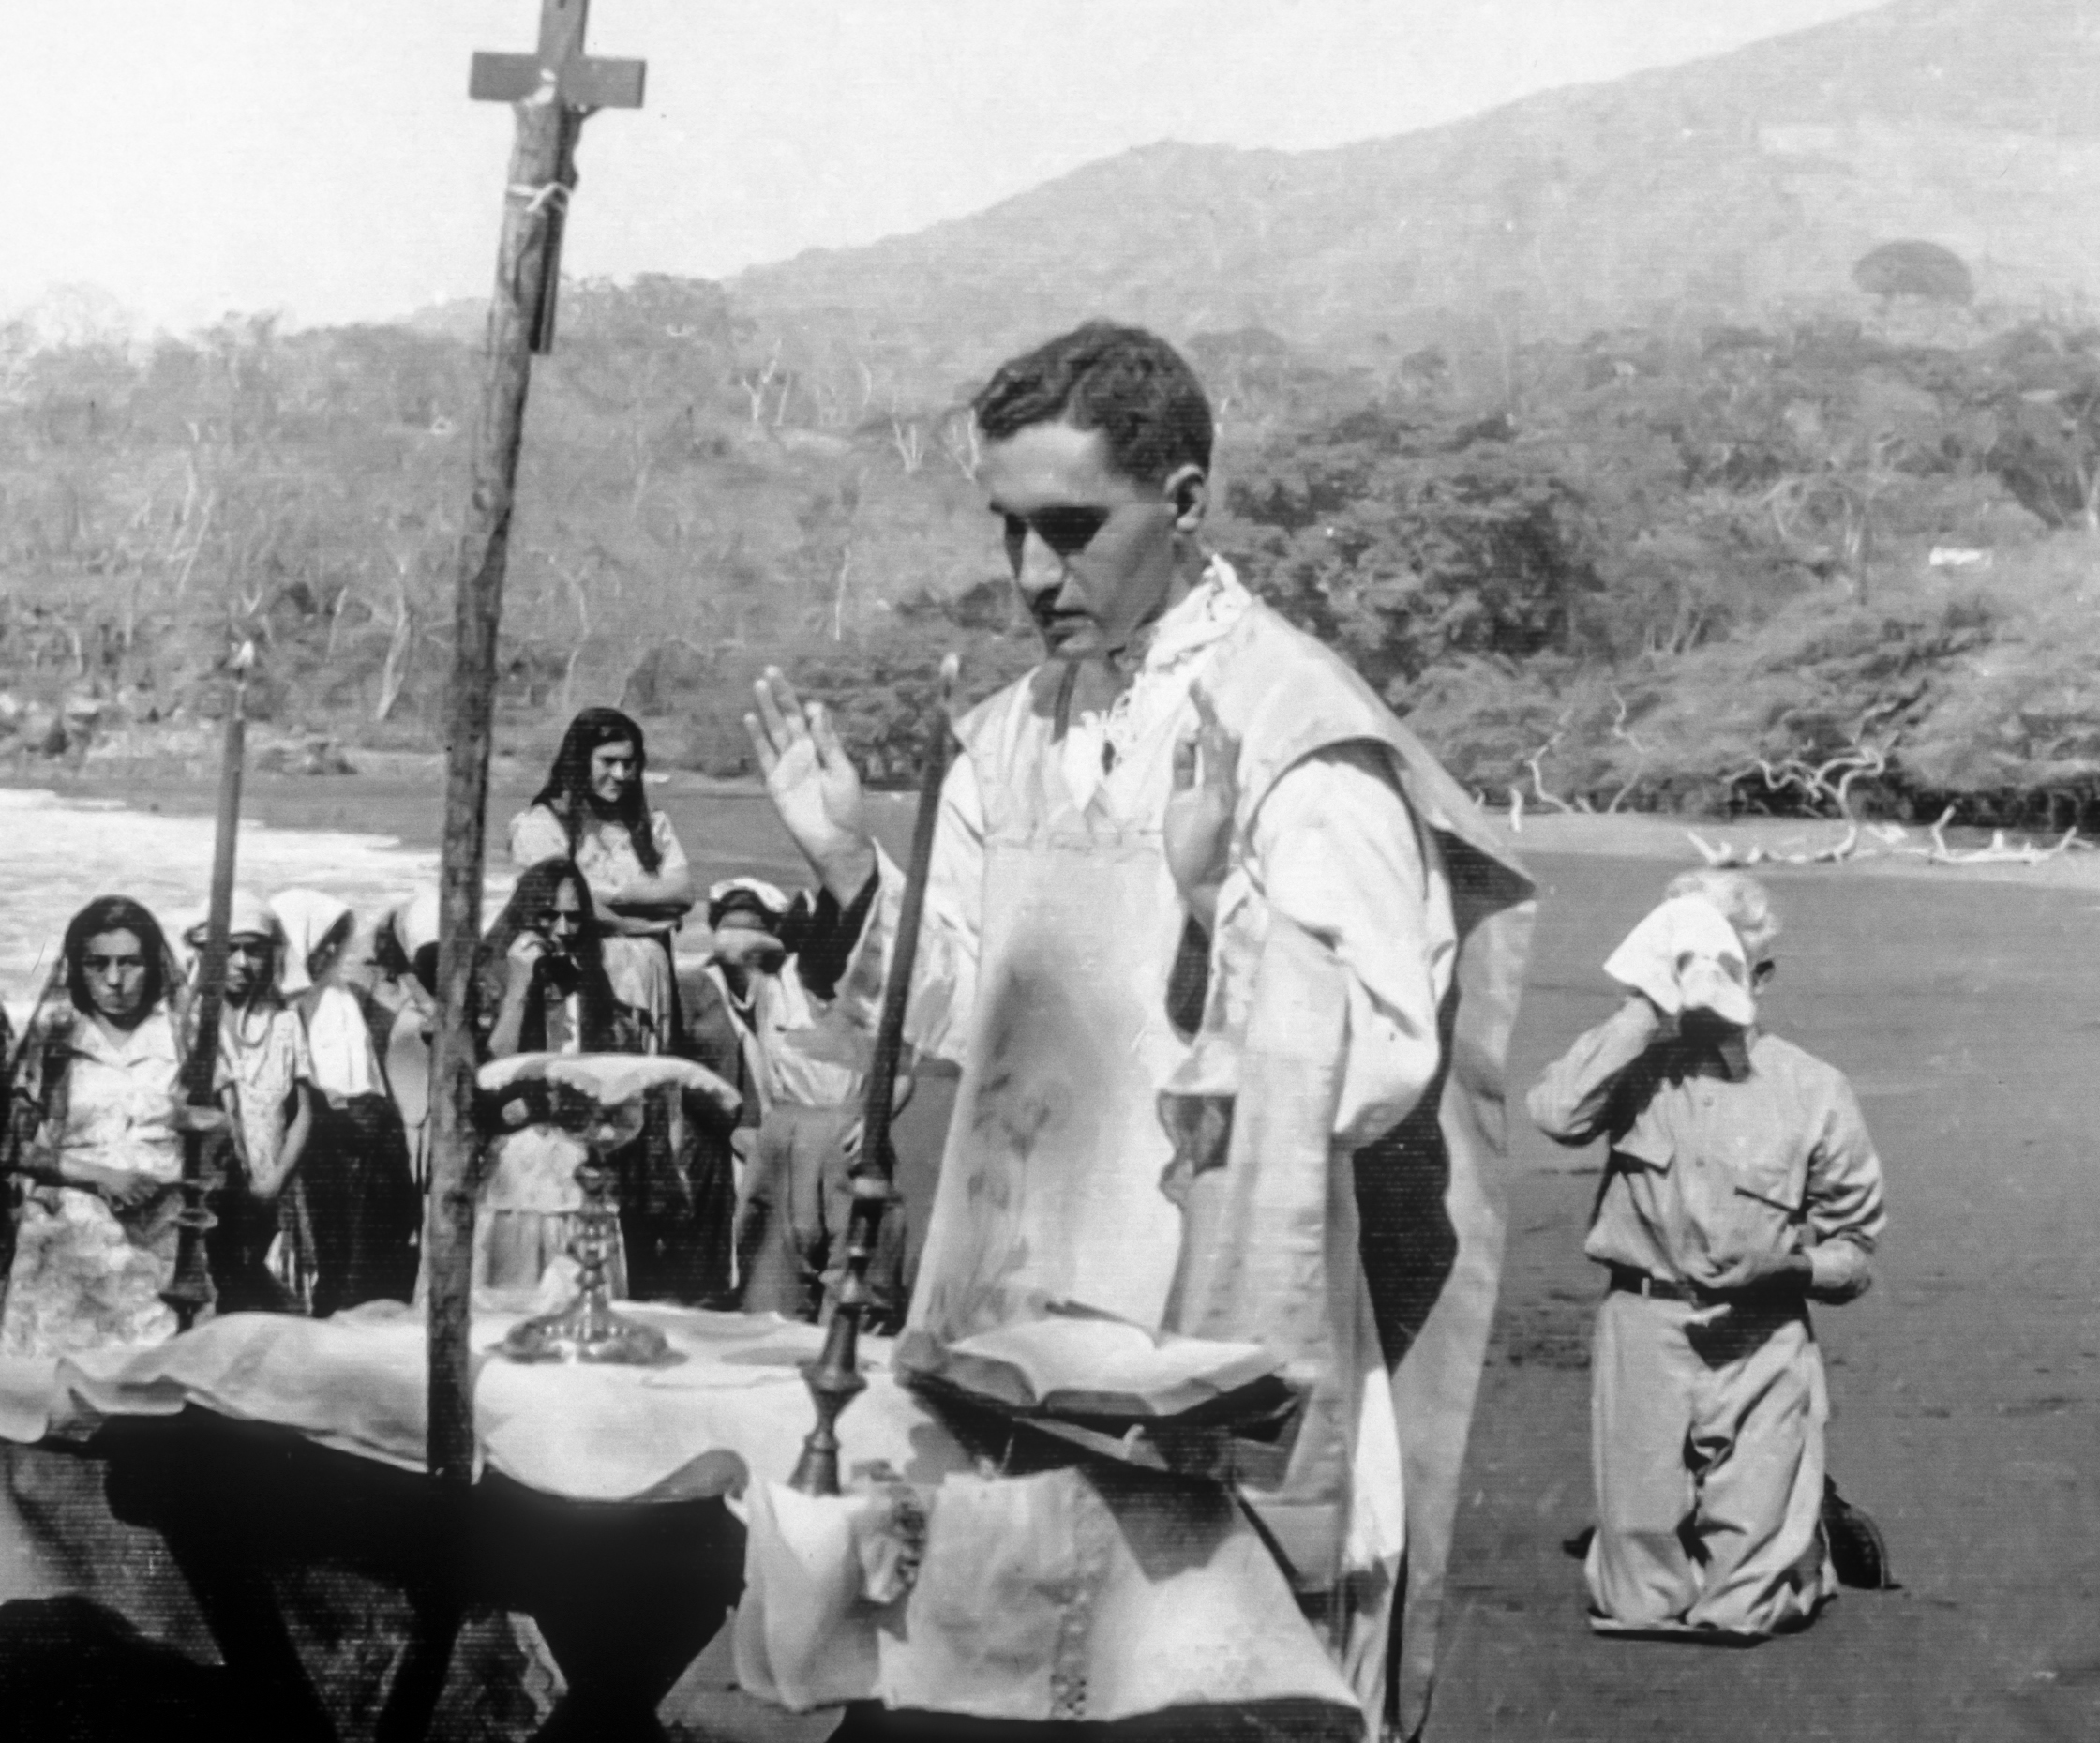 A young Romero celebrating Mass - CAFOD